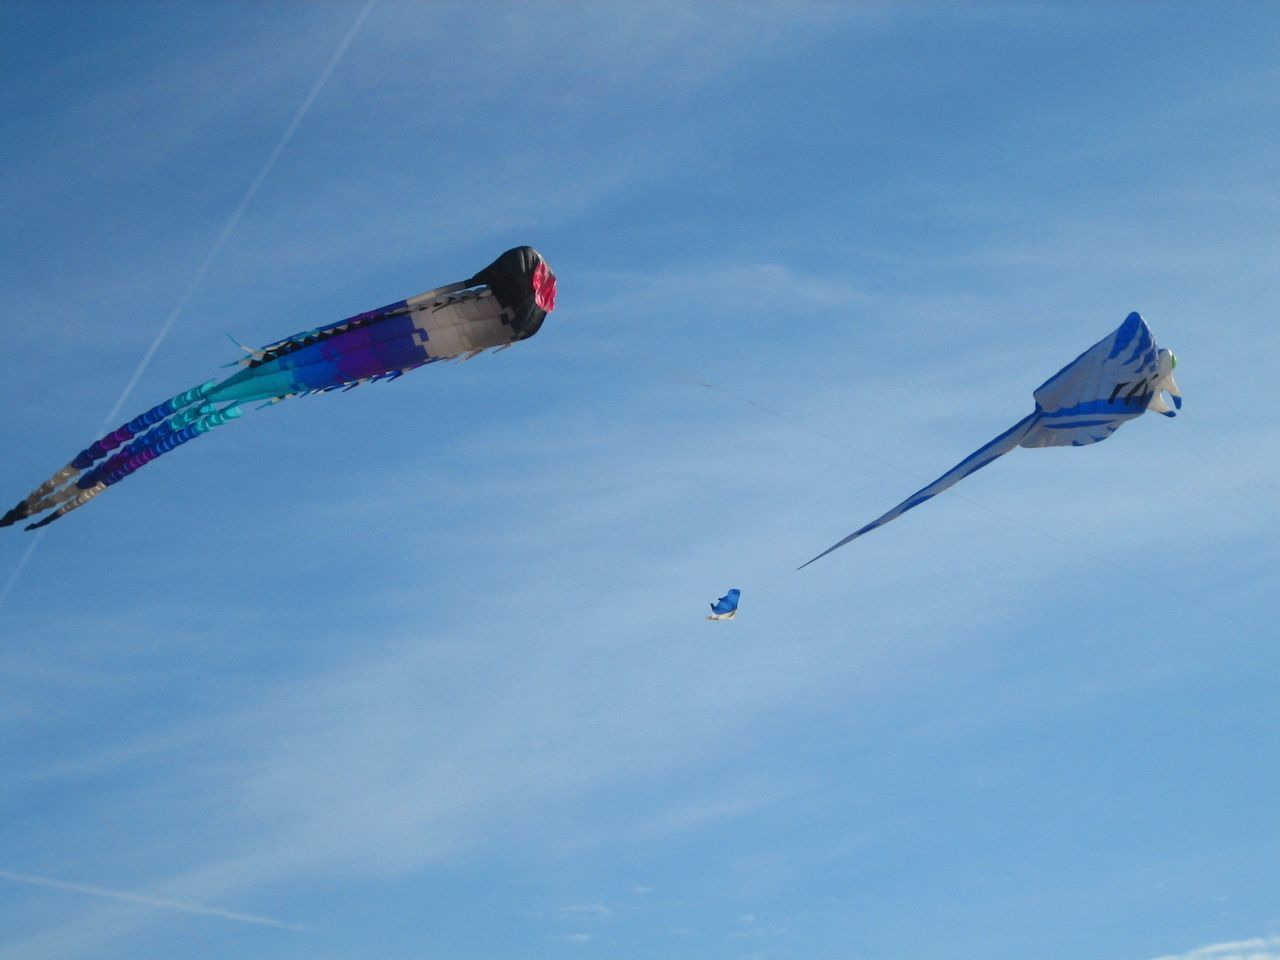 Kite Flying Kite Kites Blue On Blue  Kite In The Sky Kite In Flight Blue Kite Kite On The Beach International Kite Festival Multi Colored Flying High Flying Cometa Showcase April Sky_collection Leisure Activity Freedom Cometas Air Borne Two Kites Blue Wave